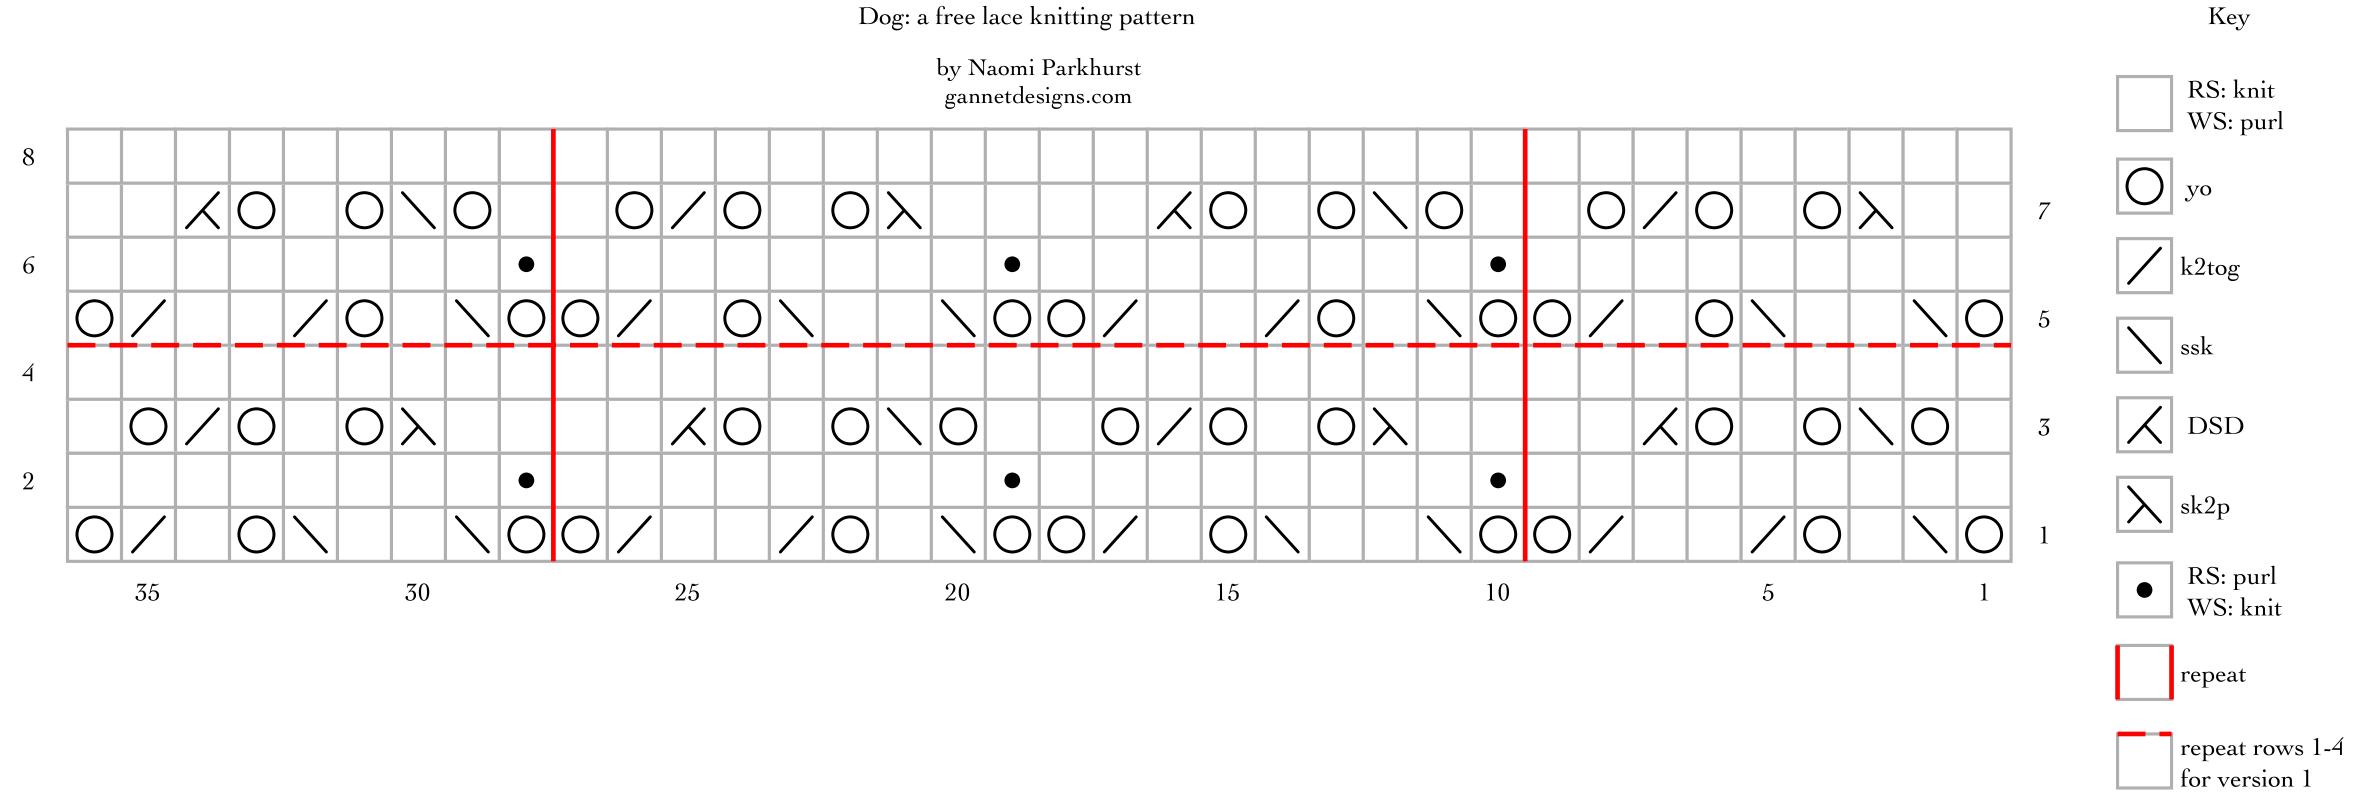 Dog: a free lace knitting stitch pattern chart, by Naomi Parkhurst